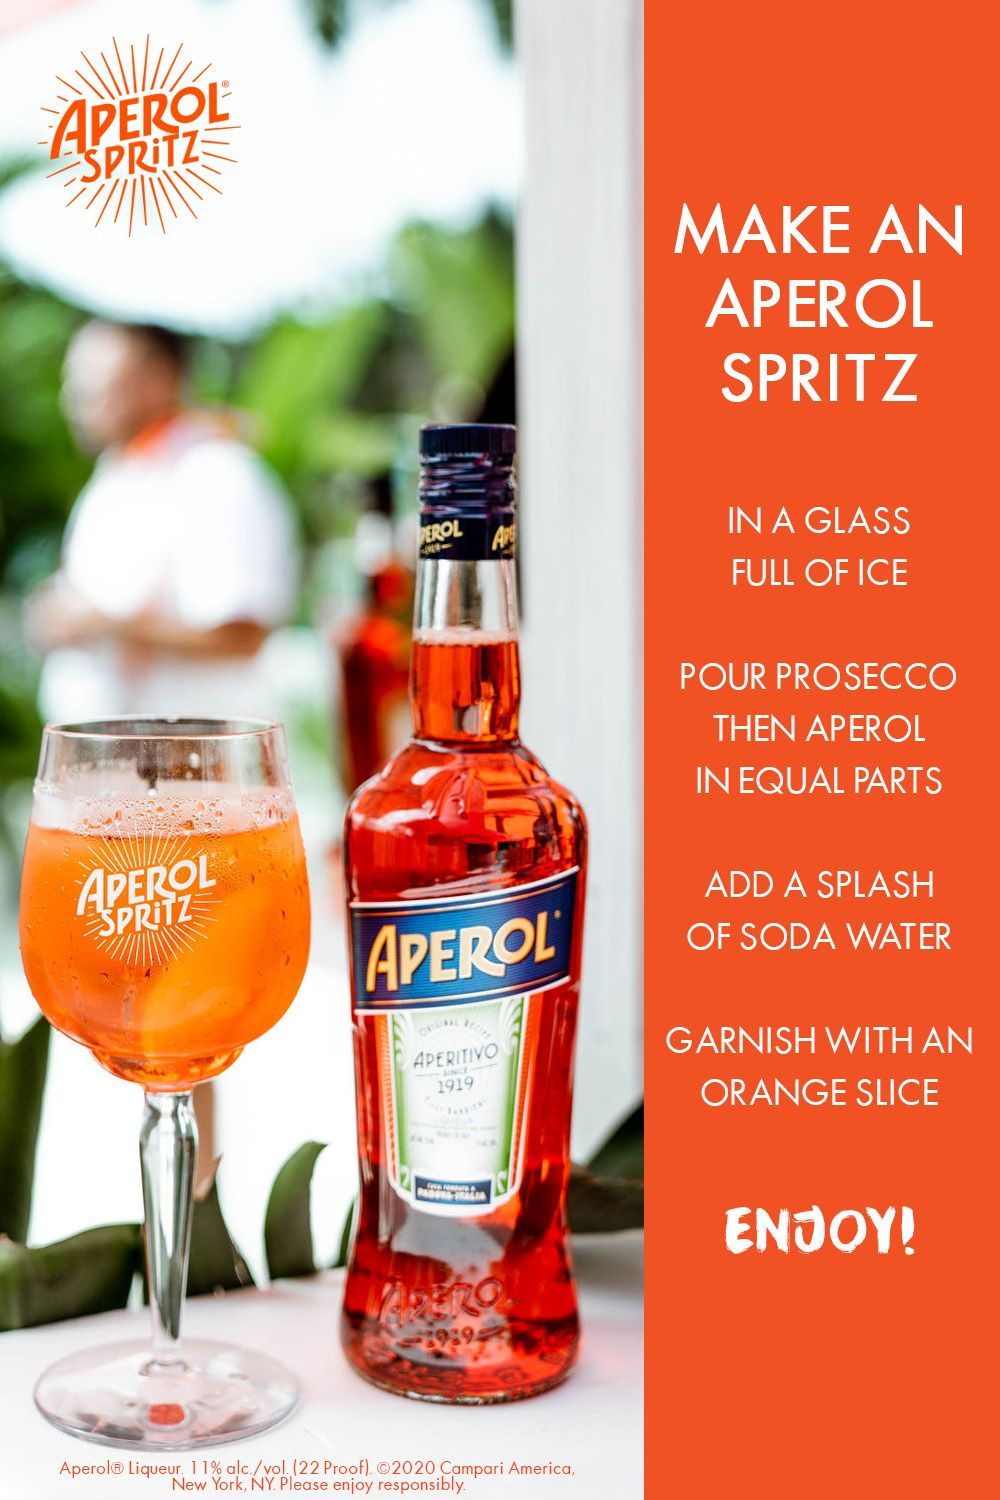 Learn How To Make An Aperol Spritz In 2020 Aperol Spritz Recipe Spritz Recipe Aperol Spritz